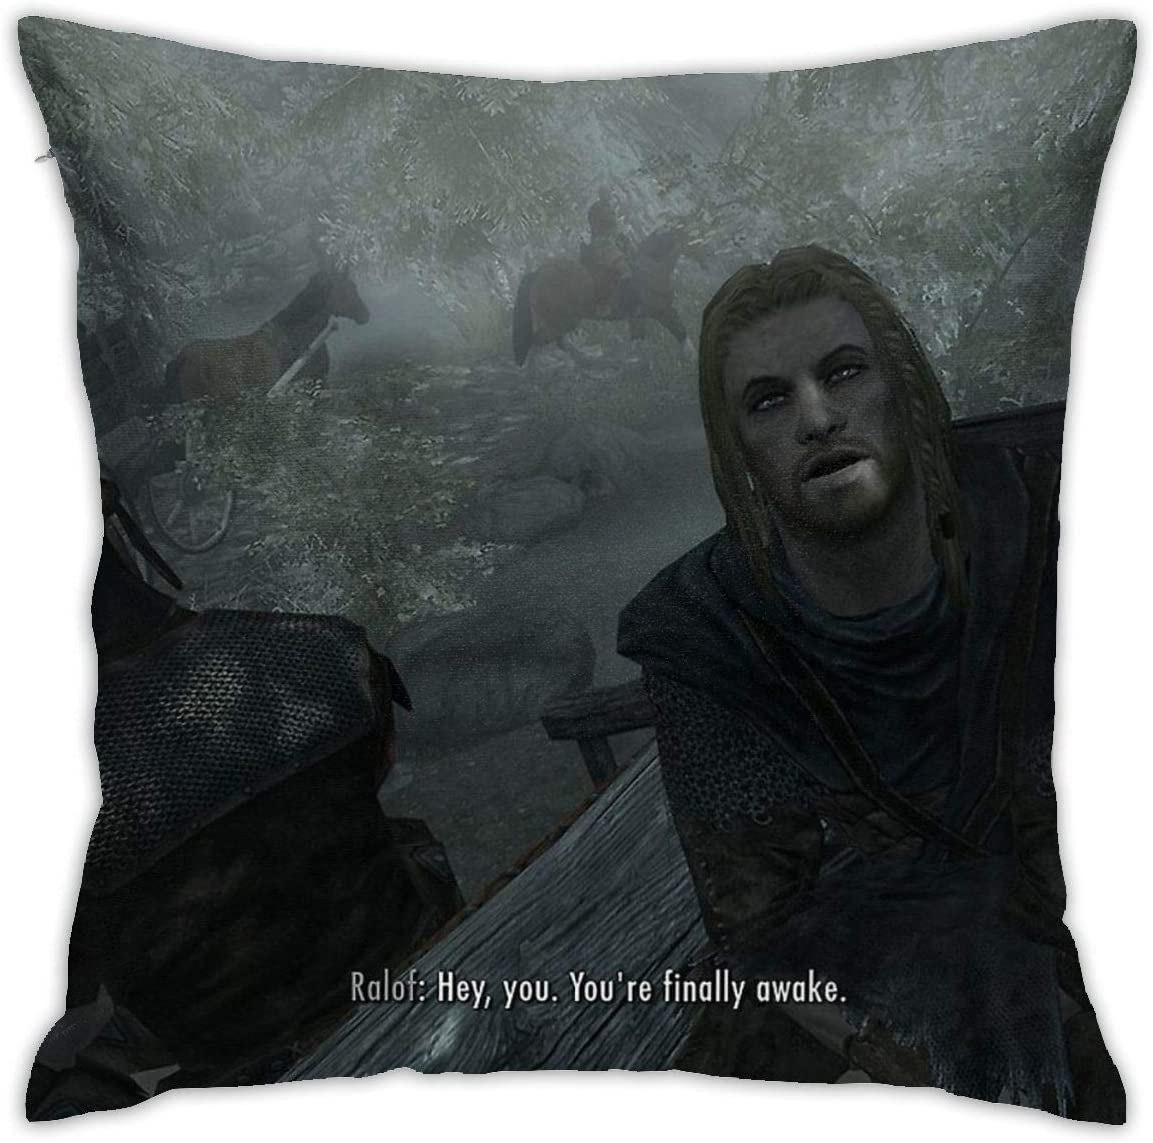 Hey You You Re Finally Awake Pillow Cover - Meme Painted